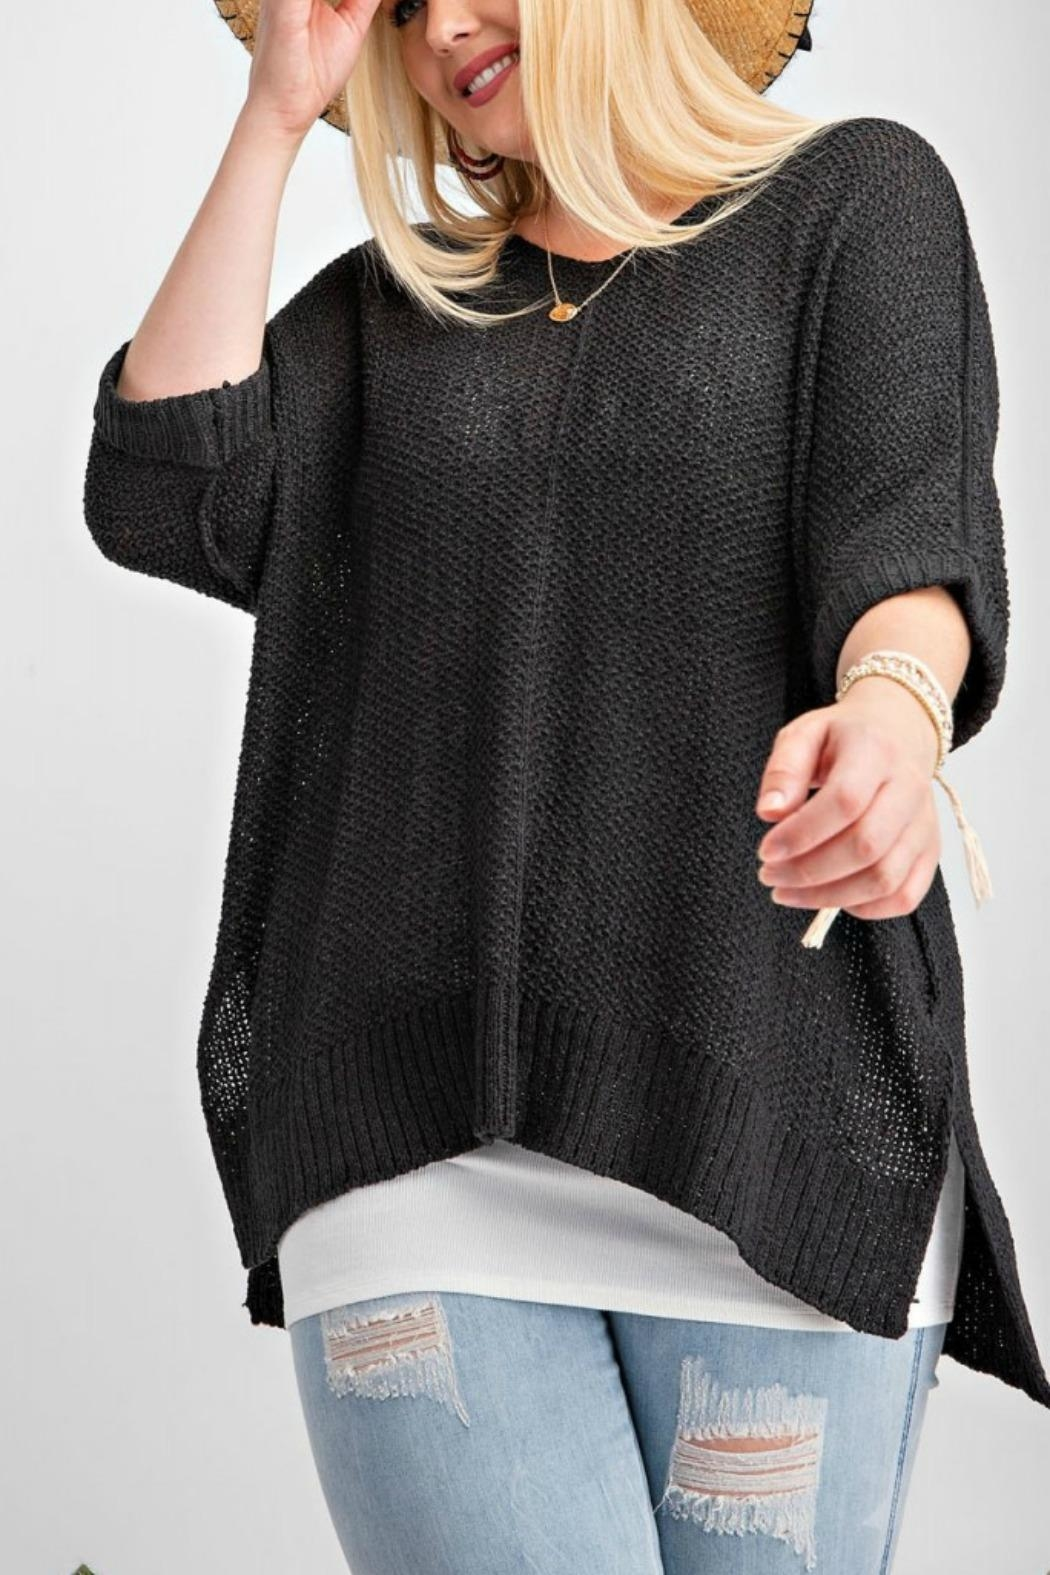 easel Black Sweater Top - Front Full Image